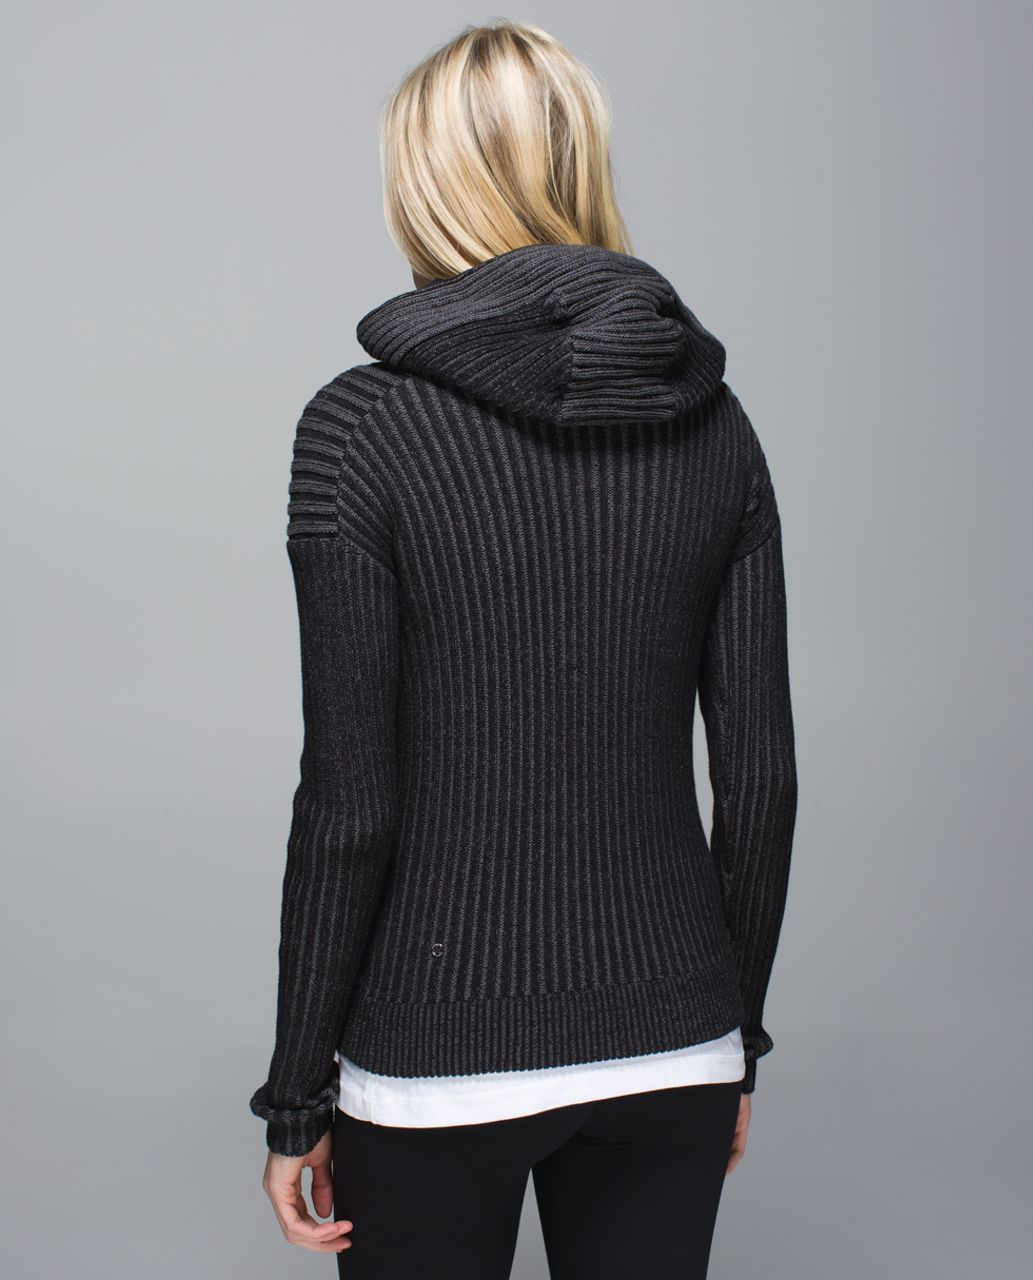 Lululemon Embrace Hoodie *Knit - Black / Heathered Dark Grey ...